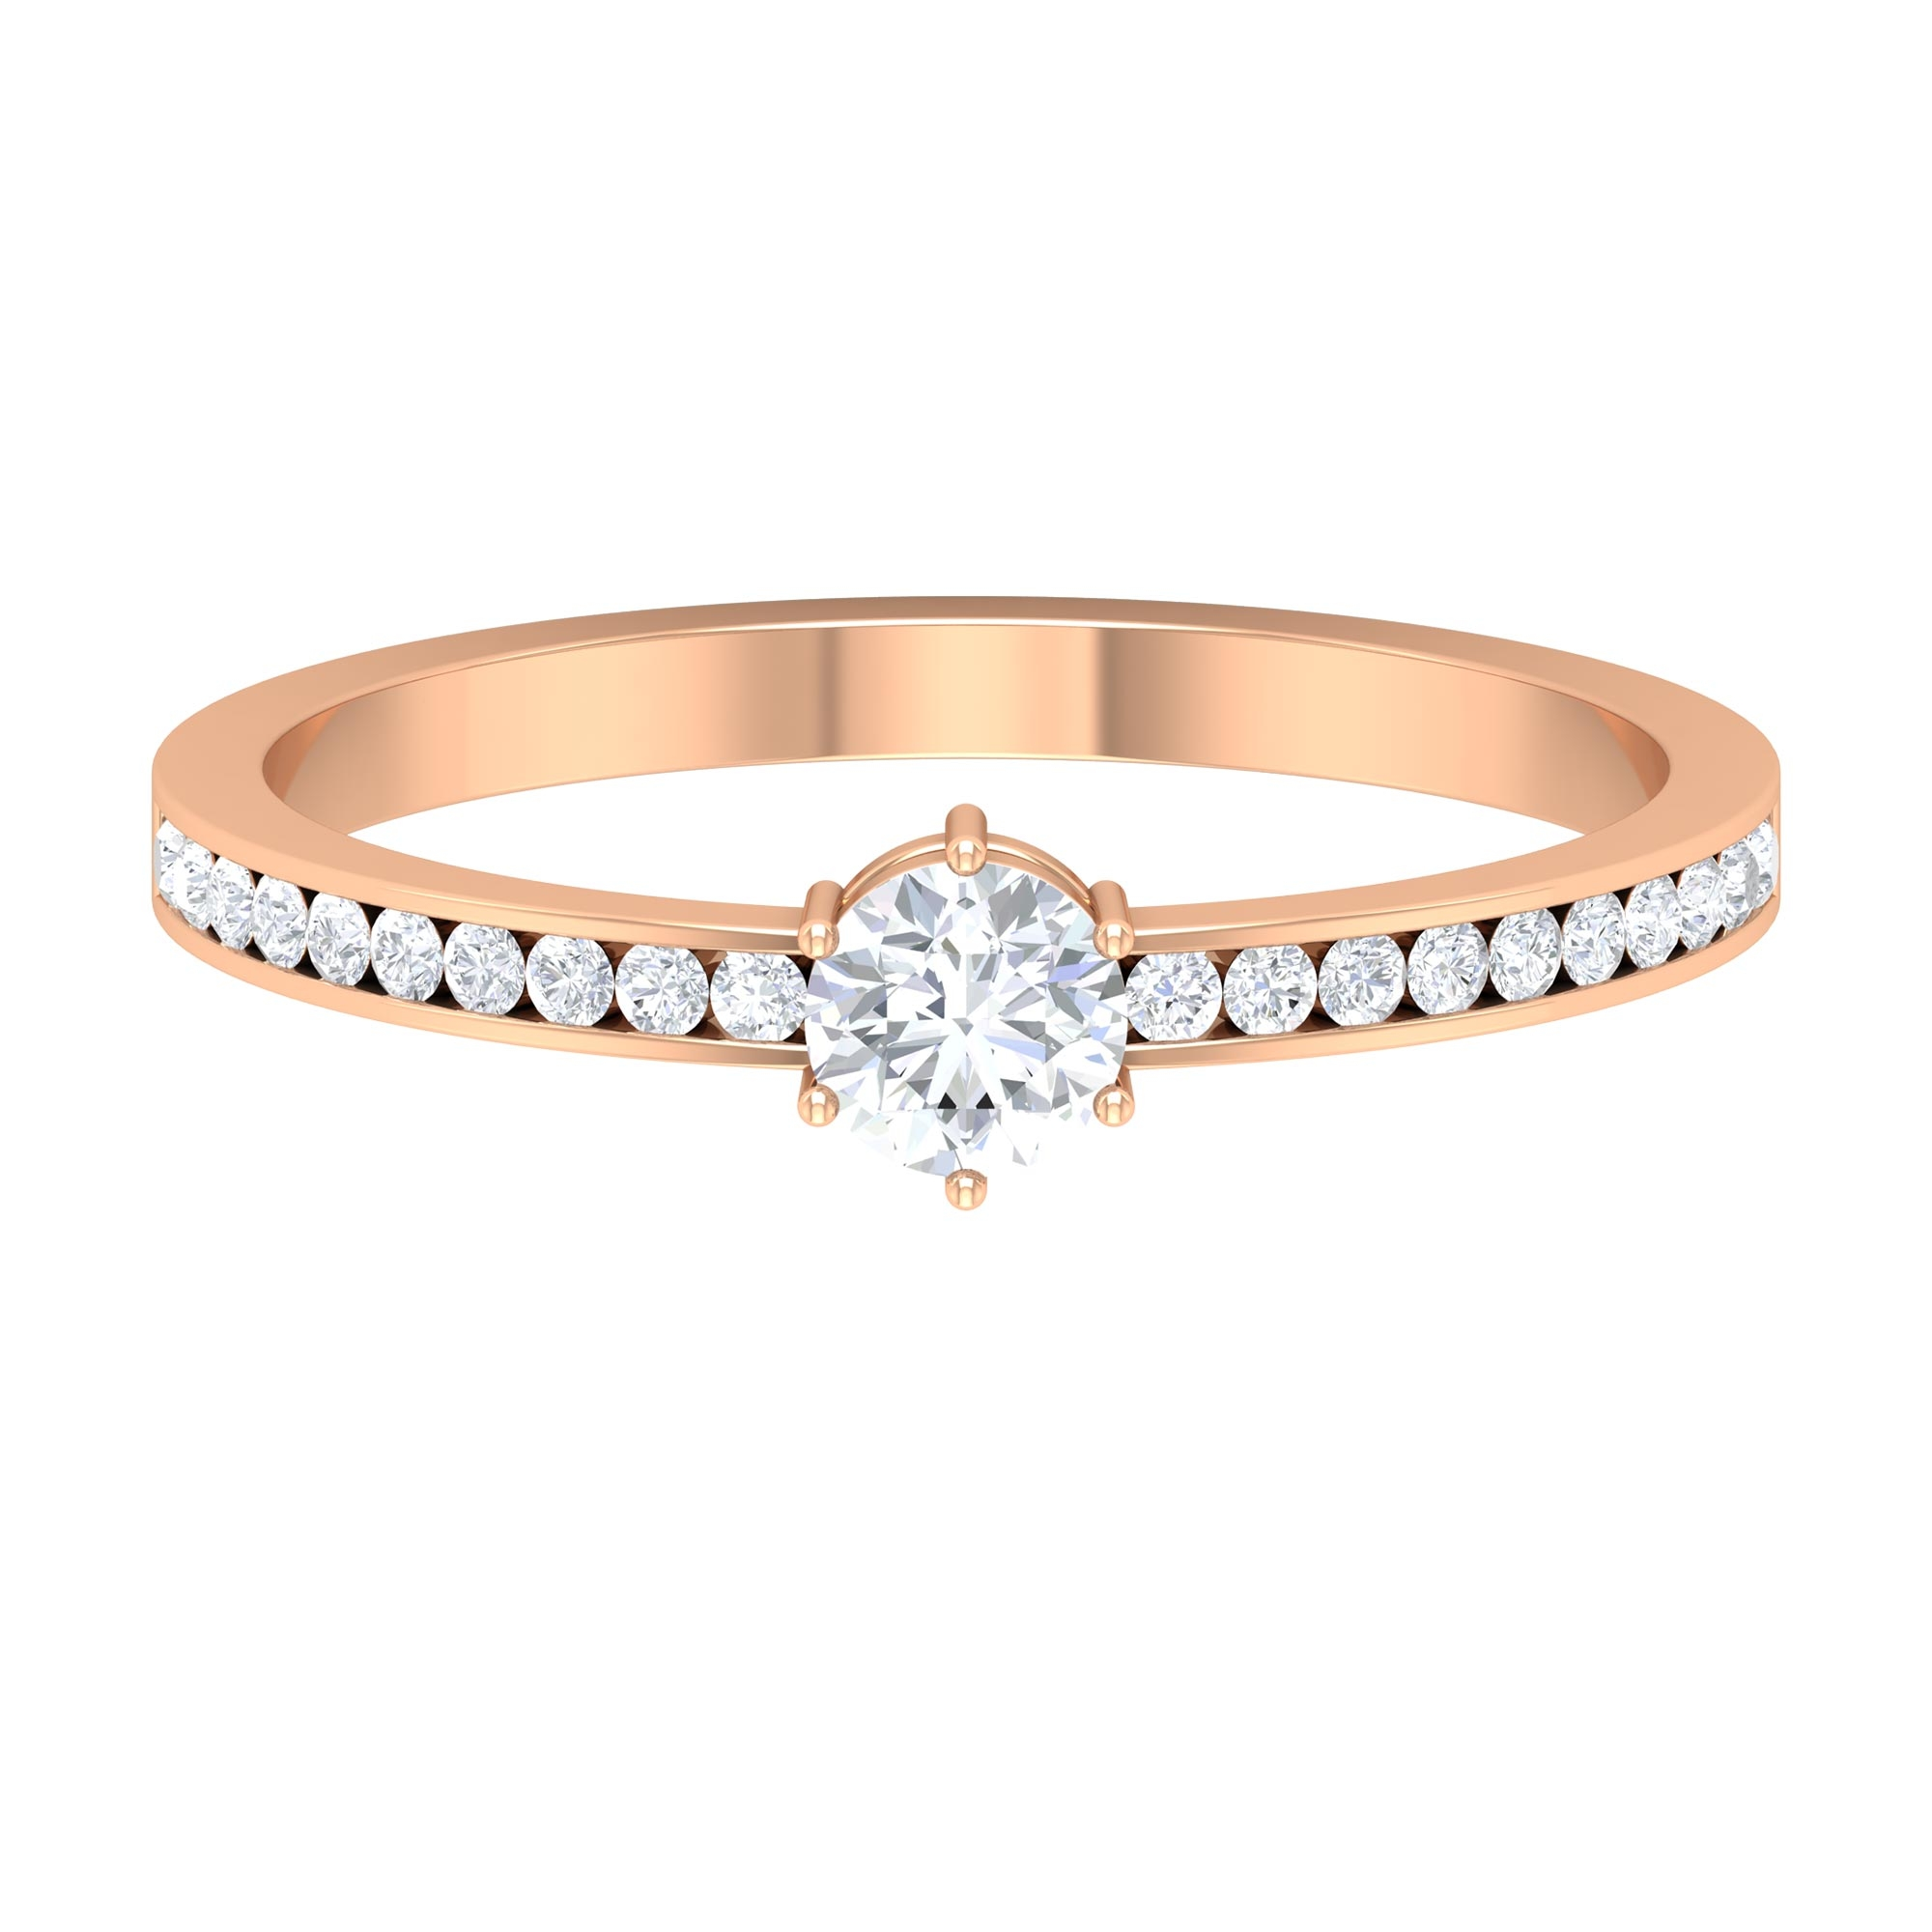 1/2 CT 6 Prong Set Diamond Solitaire Ring with Channel Set Side Stones